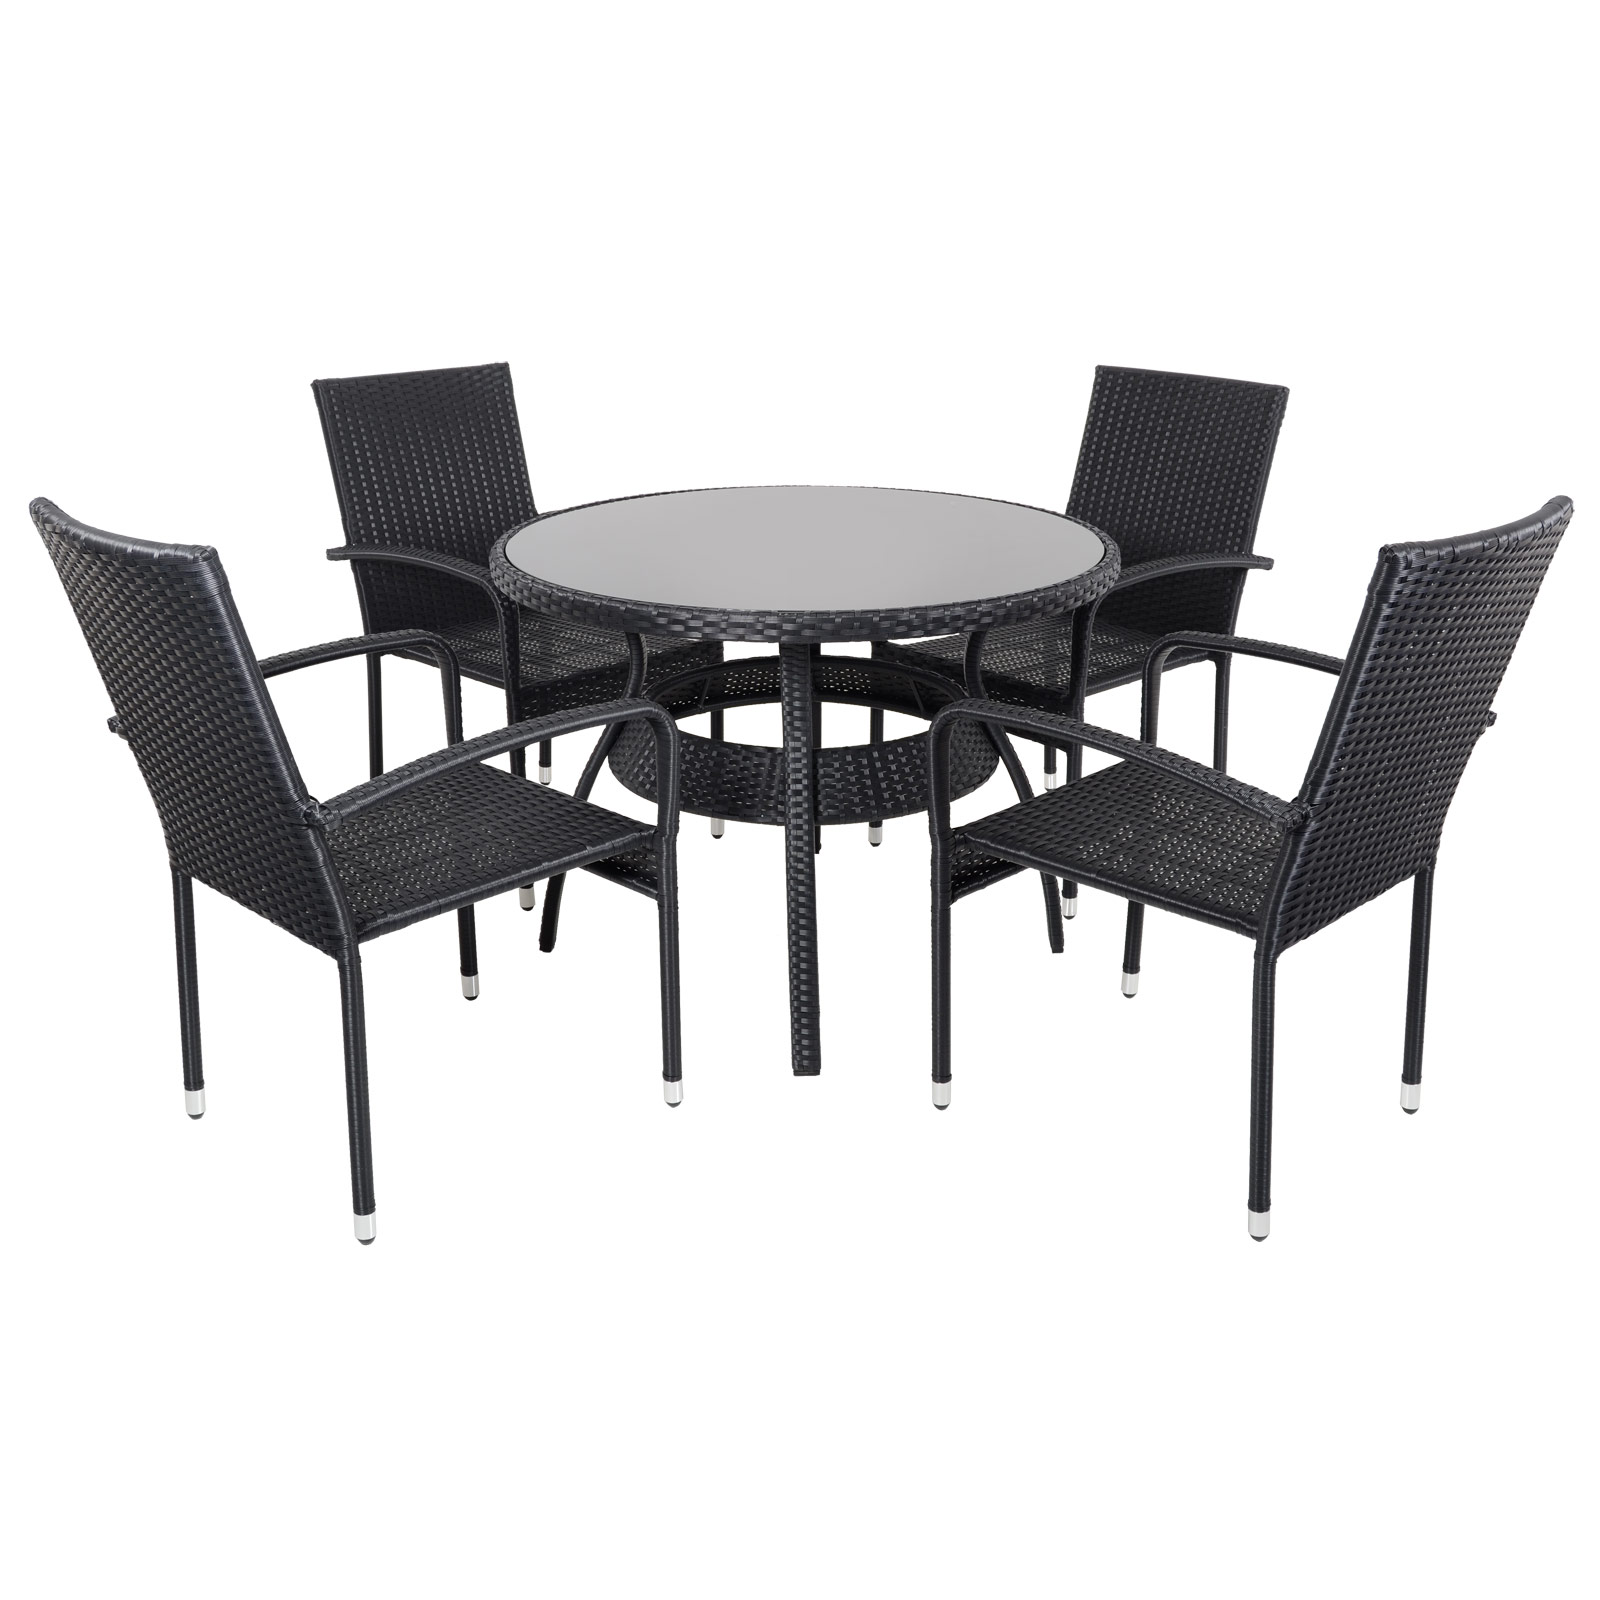 Ravenna Dining Table 4 Chairs Black Rattan Wicker ...